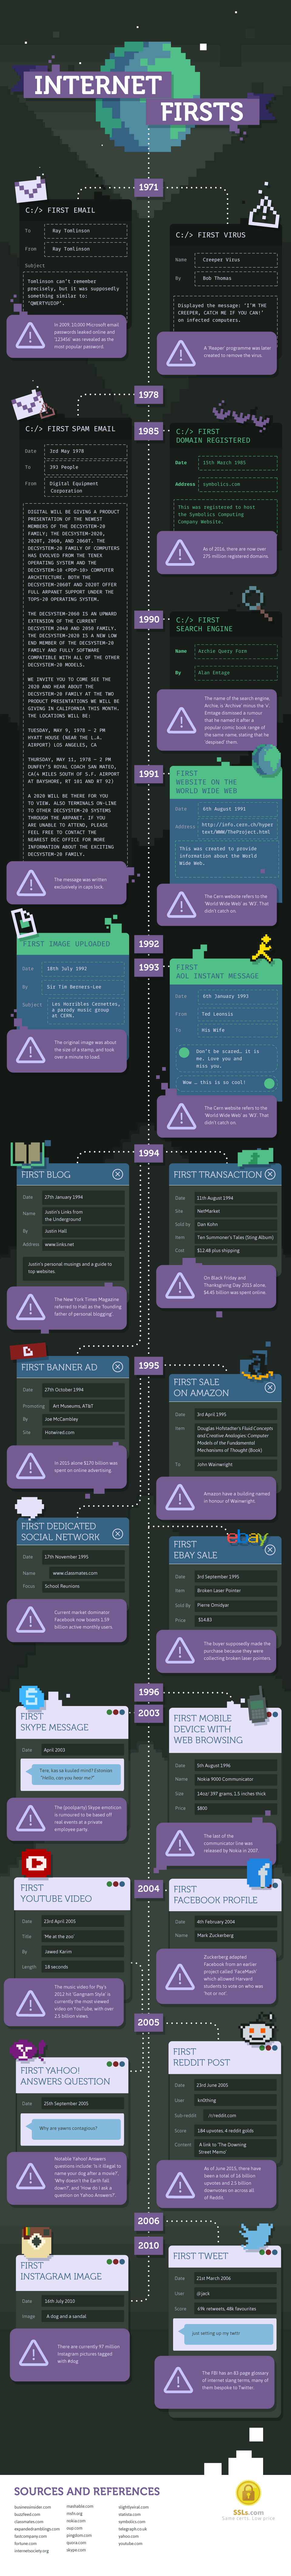 Internet Firsts Infographic by SSLs.com